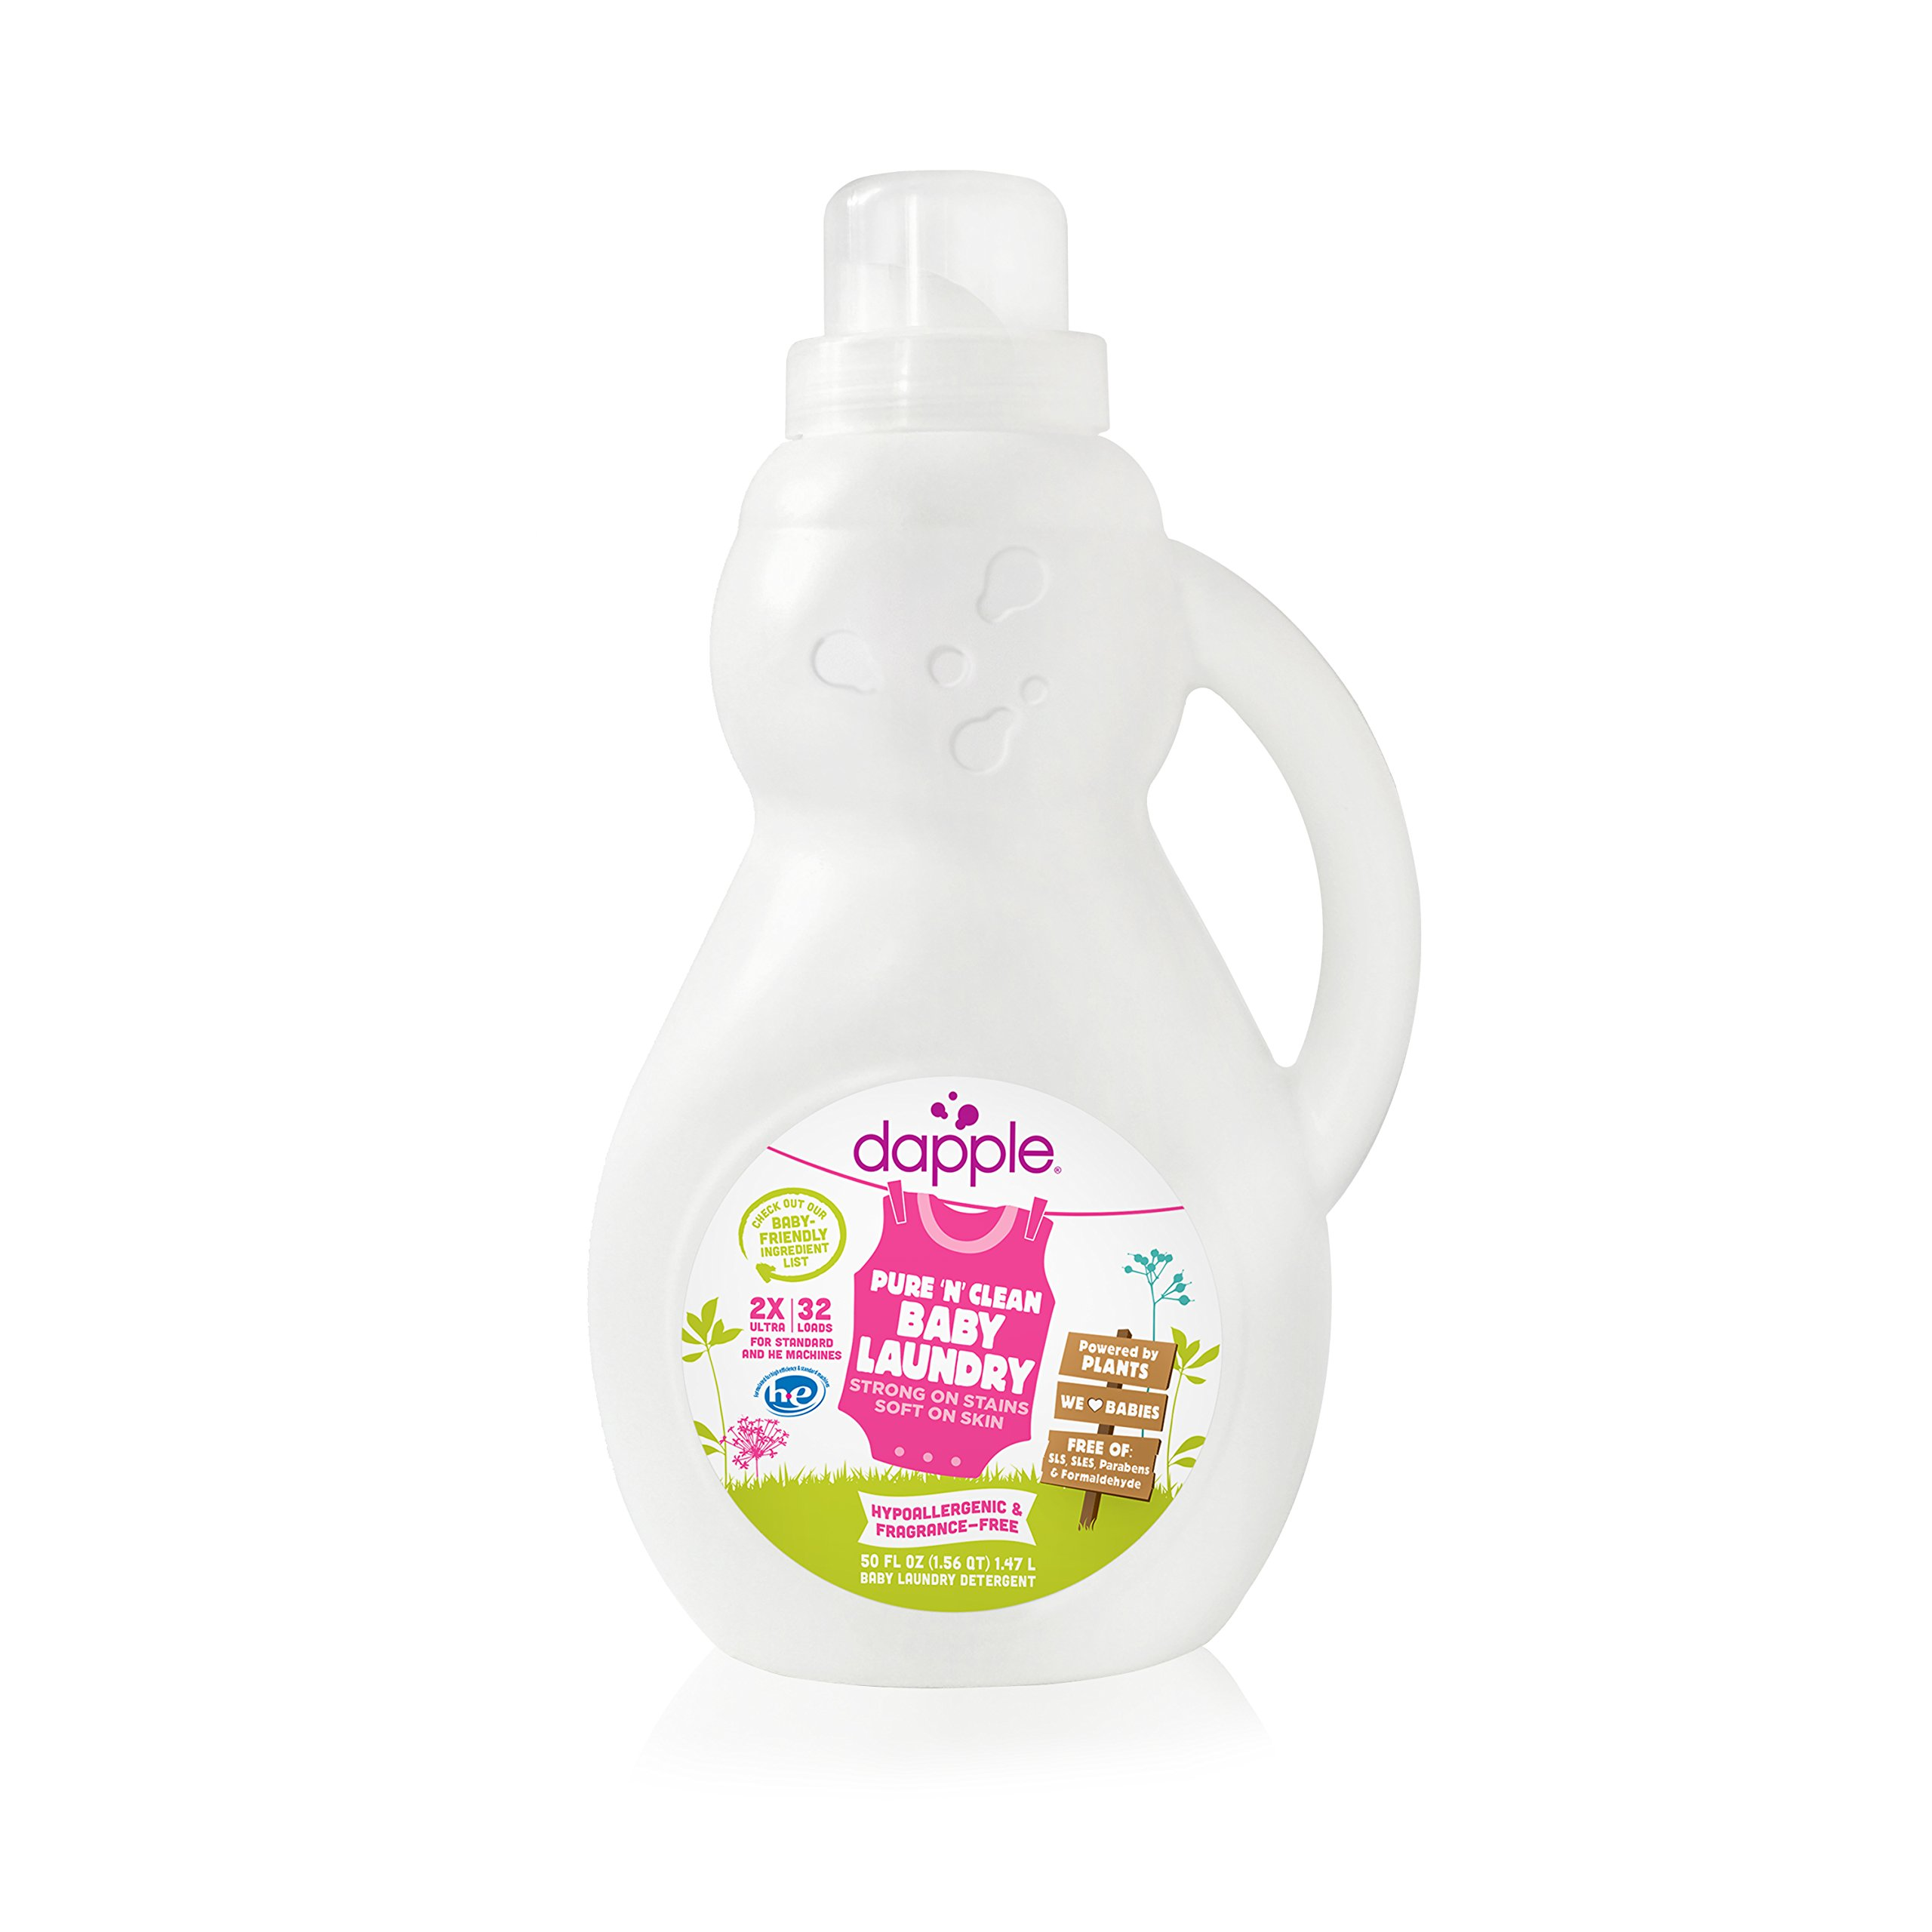 Dapple Baby Laundry Detergent, Fragrance Free, 50 Fluid Ounce (Pack of 4)